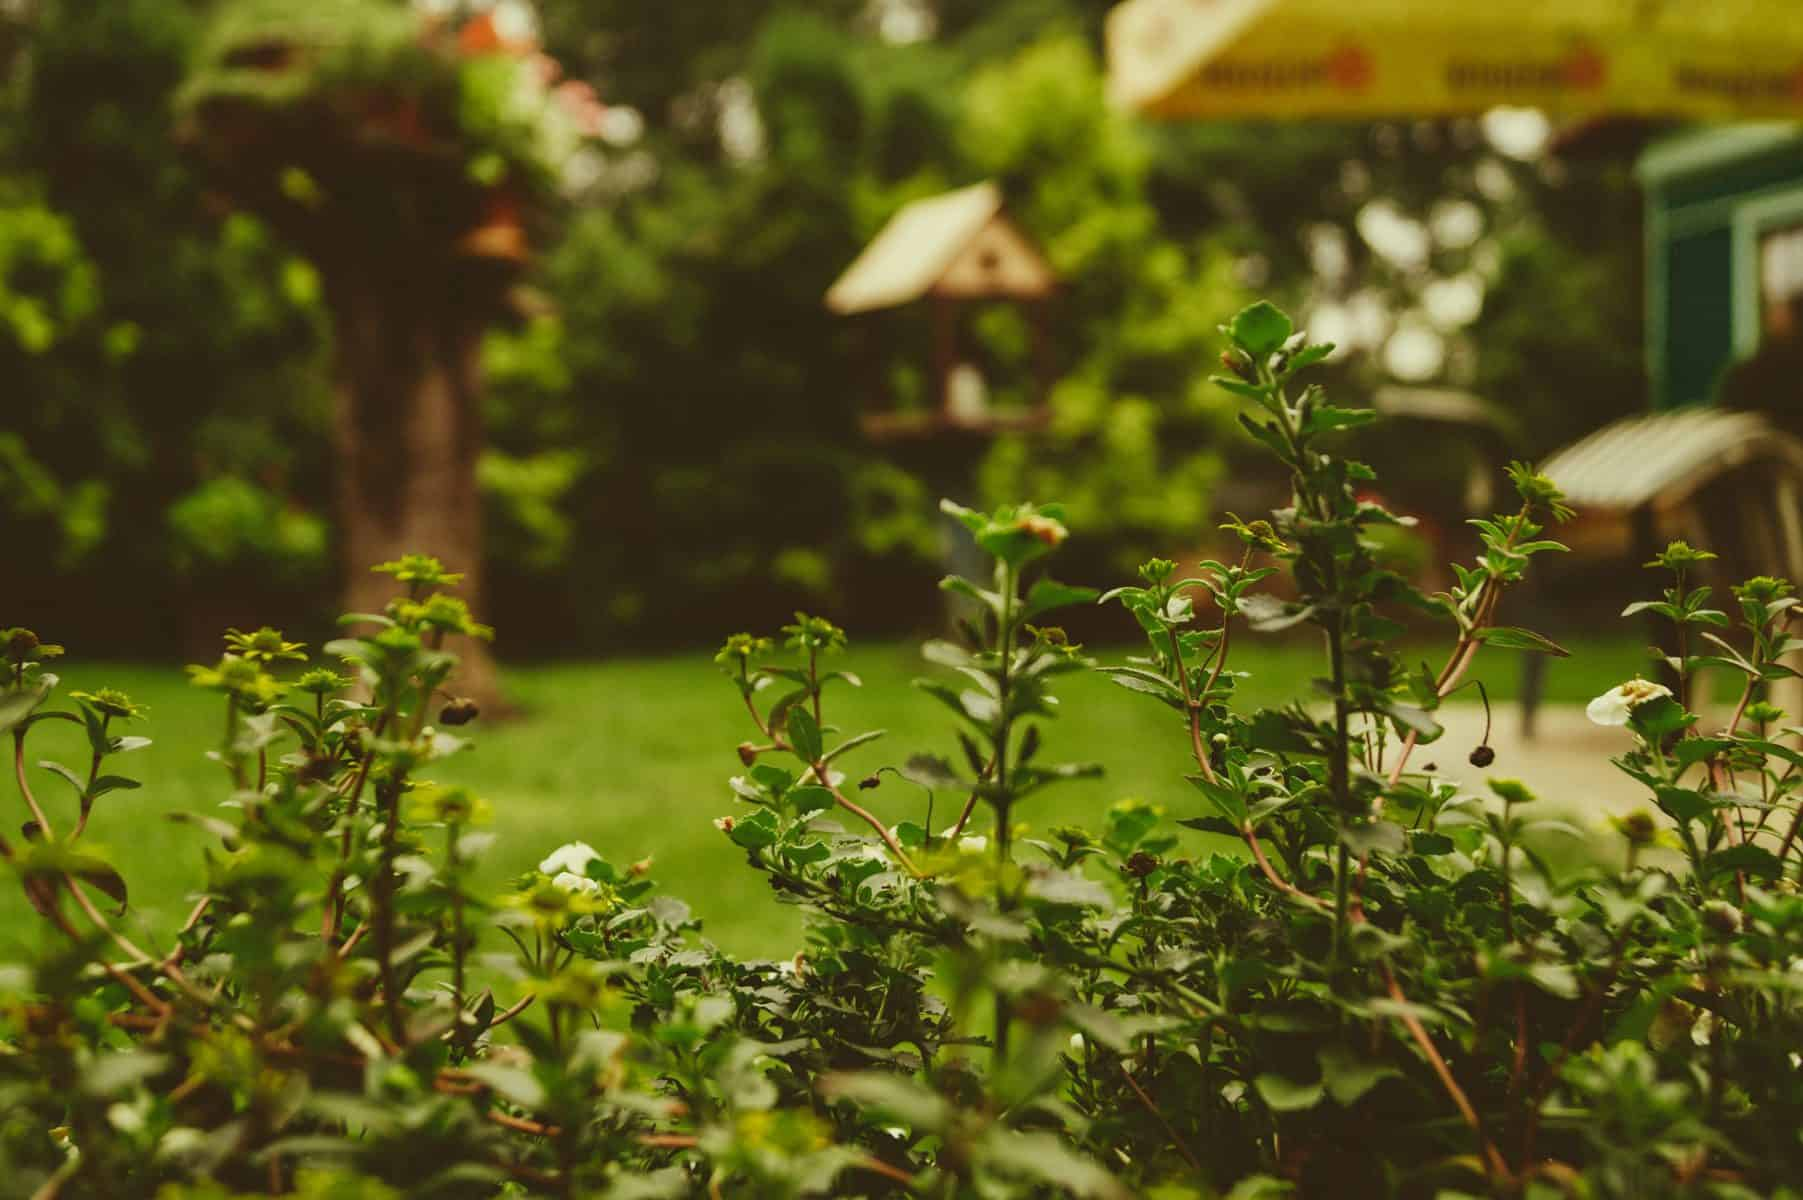 Six Emerging Garden Trends To Look Out For In 2021